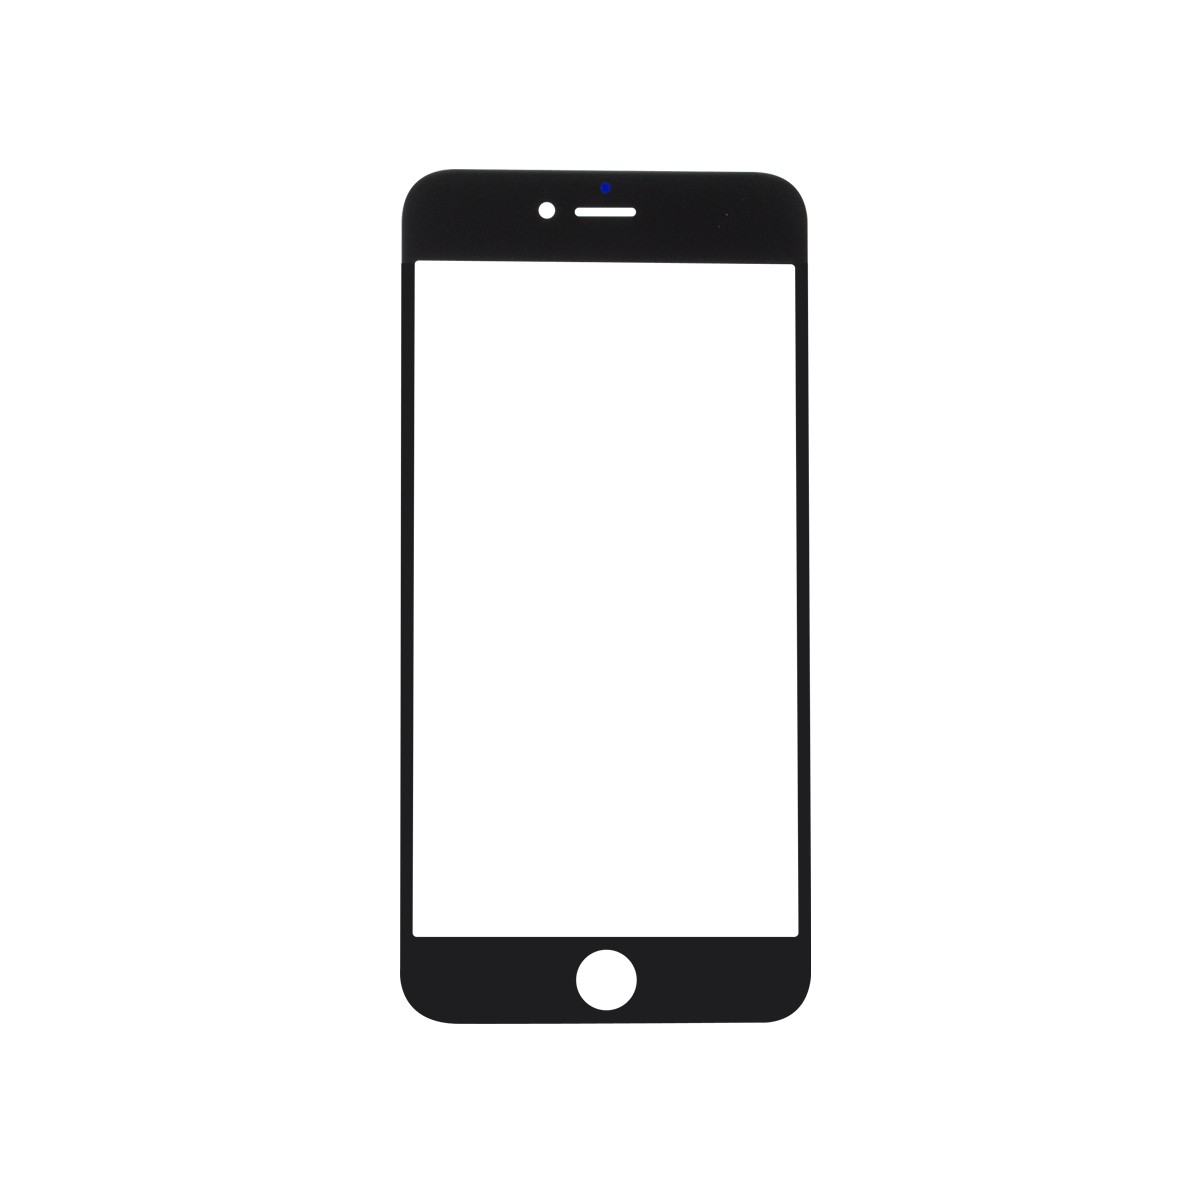 iPhone 6 Plus Black Display Assembly with Front Camera and